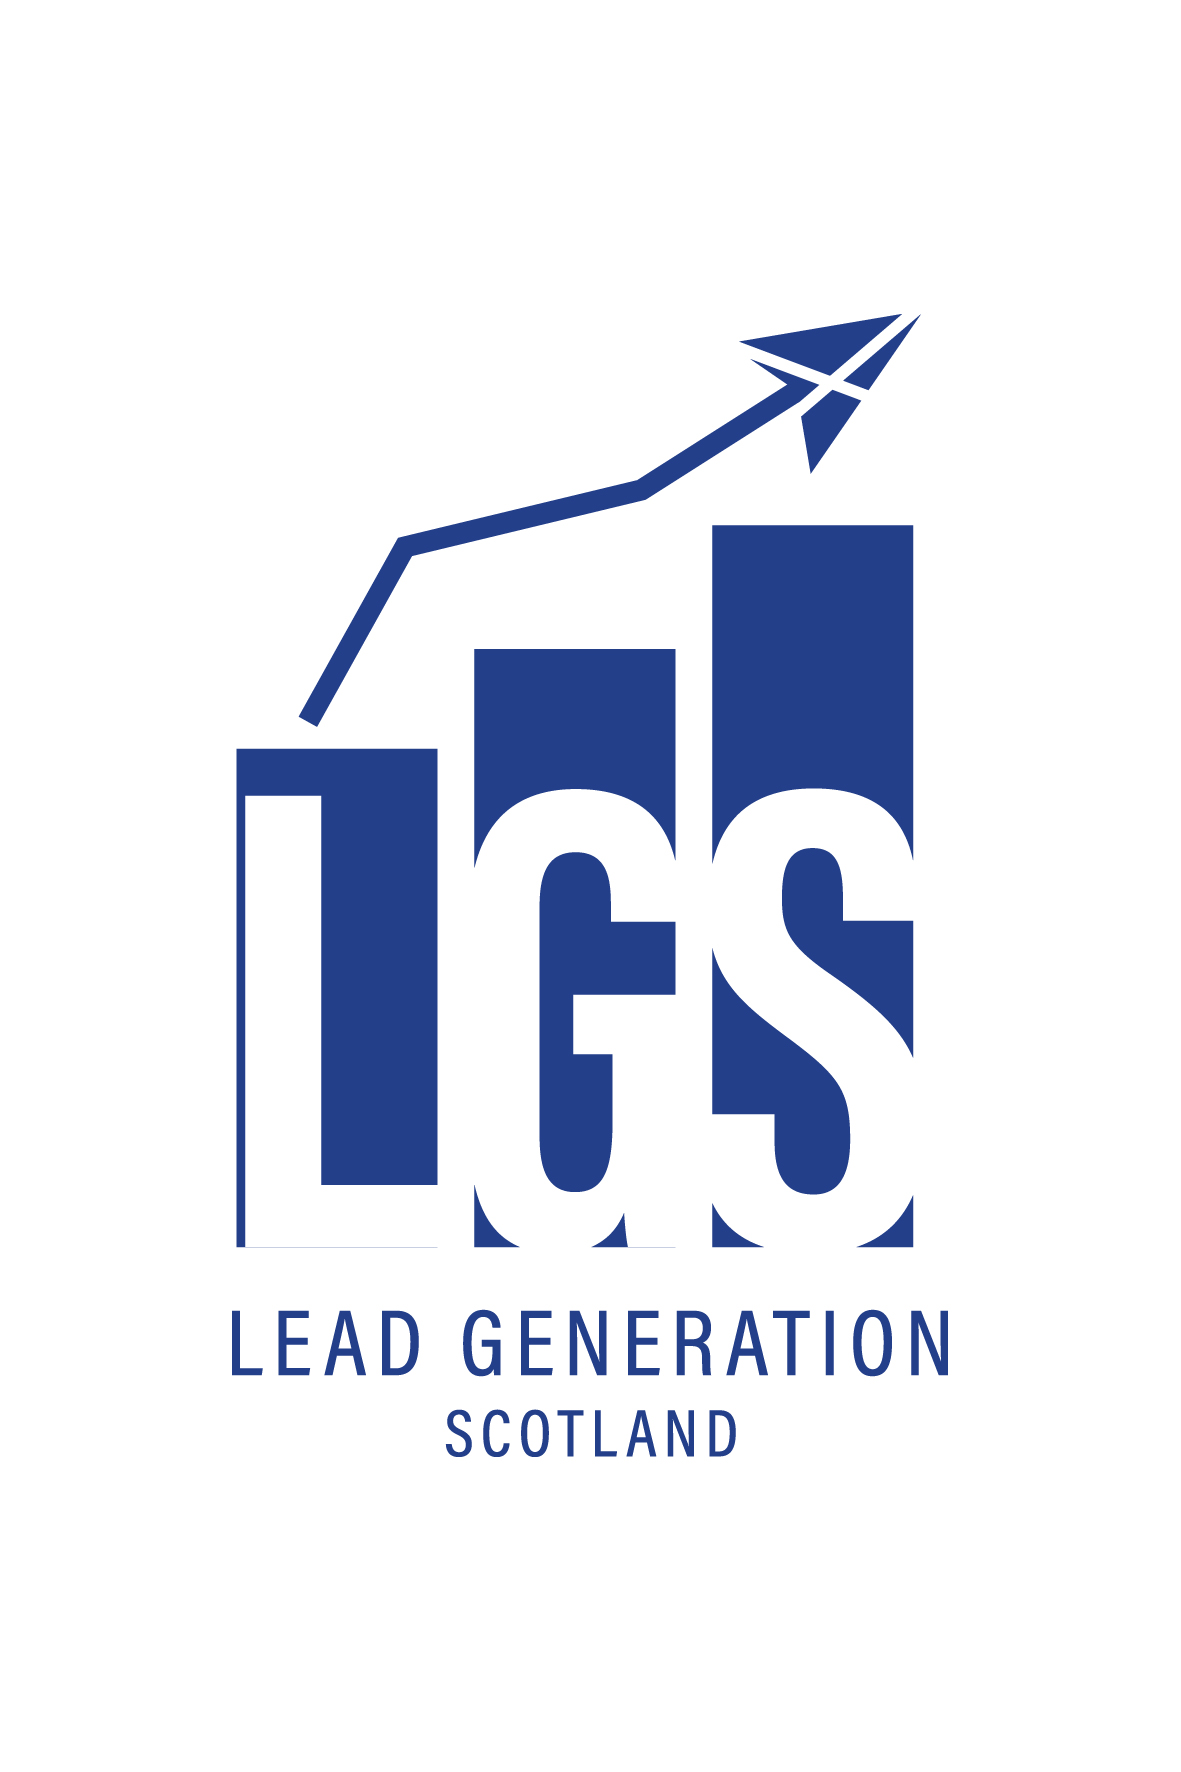 Logo of Lead Generation Scotland Ltd